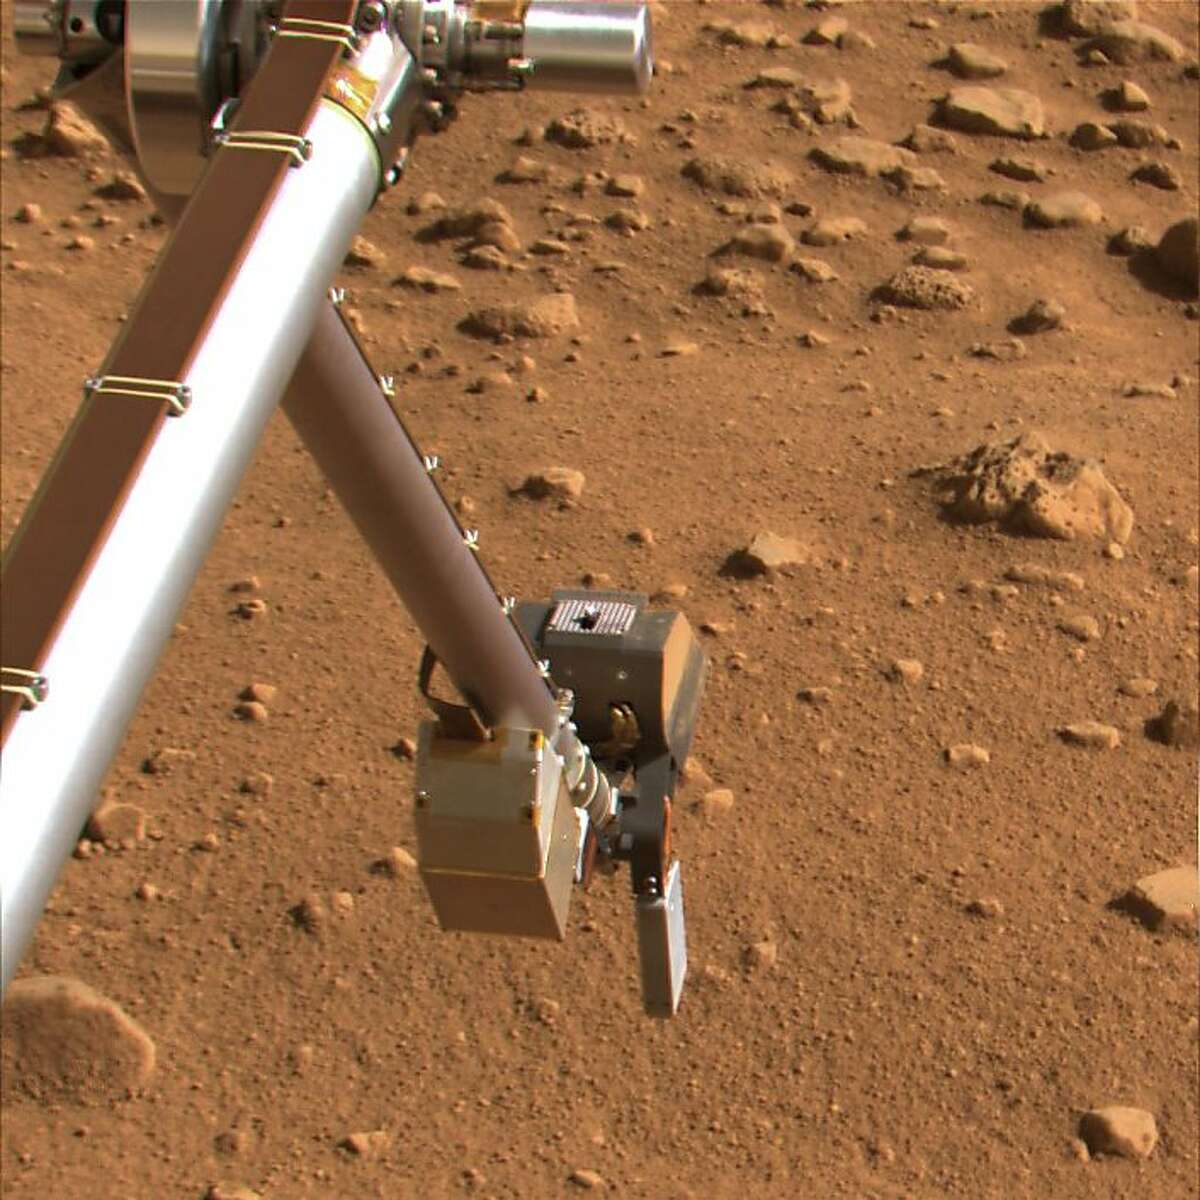 This undated image provided by NASA shows the Phoenix spacecraft's inverted scoop preparing to take soil samples on Mars. NASA's Phoenix spacecraft has detected the presence of a chemically reactive salt in the Martian soil, a finding that if confirmed could make it less friendly to potential life than once believed, according to a report Monday Aug. 4, 2008. (AP Photo/NASA)